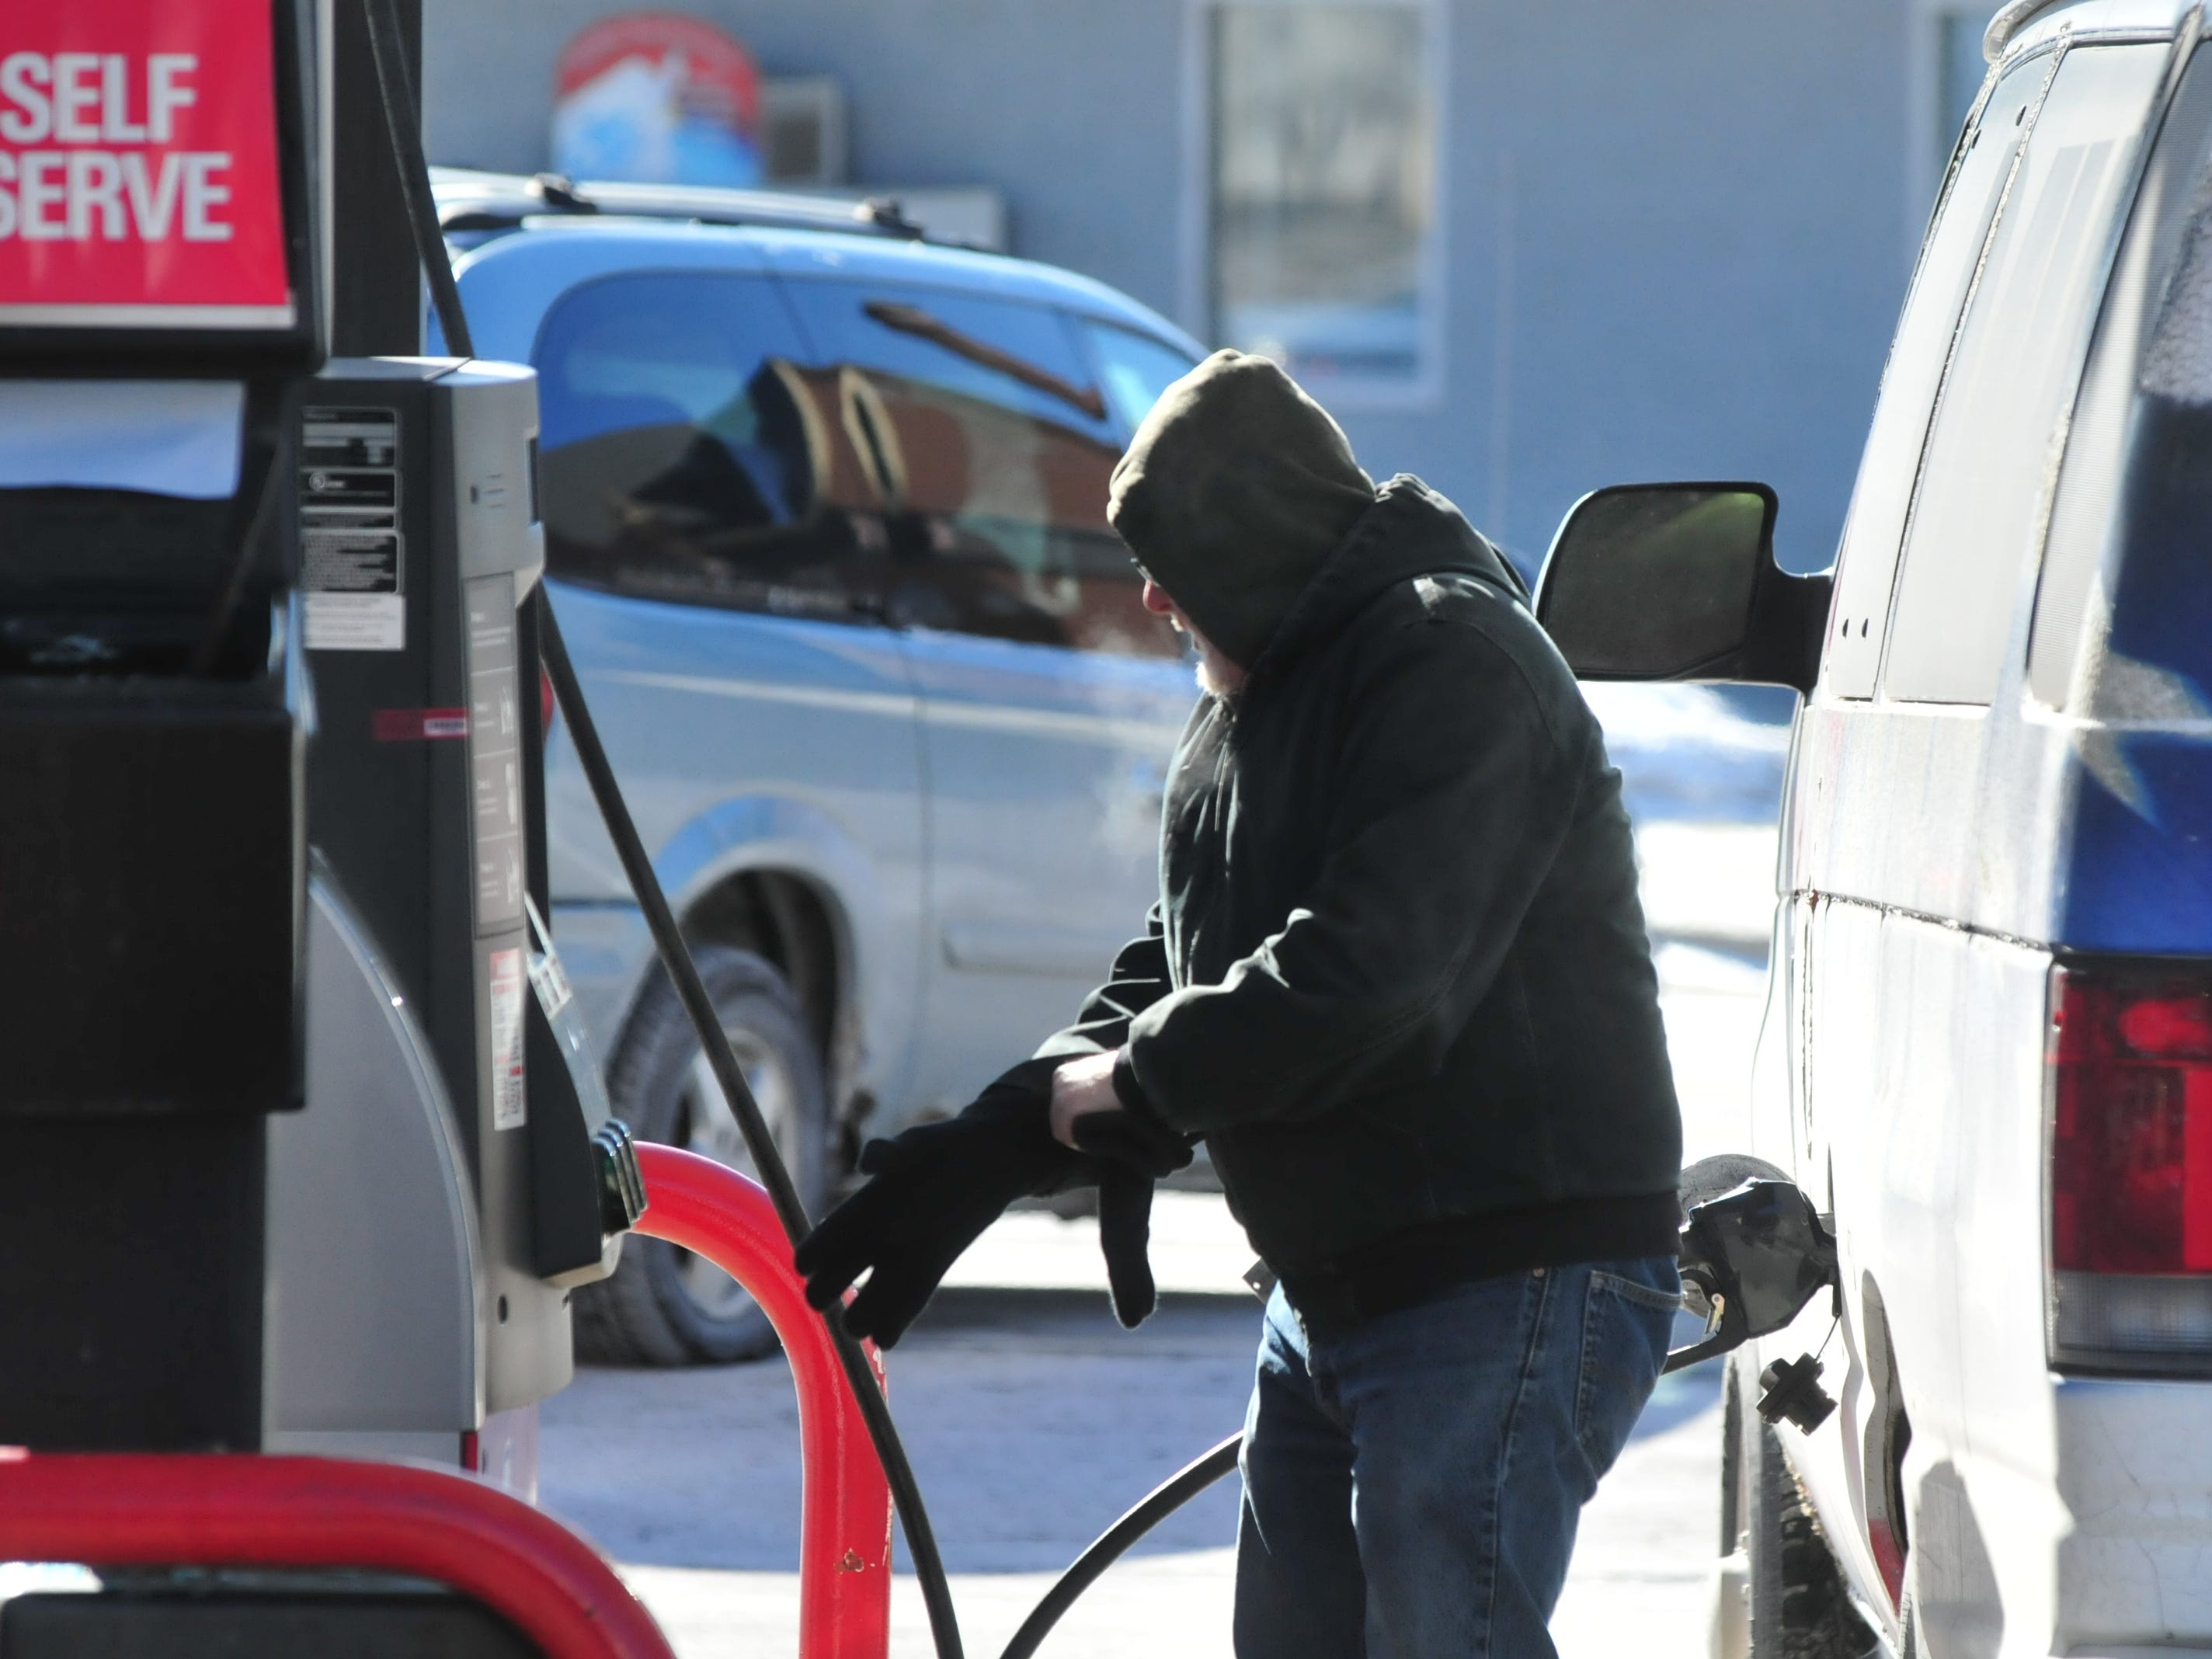 Even routine outdoor tasks, such as pumping gas, required Wayne County residents to bundle up Wednesday because of dangerous temperatures and wind chills.